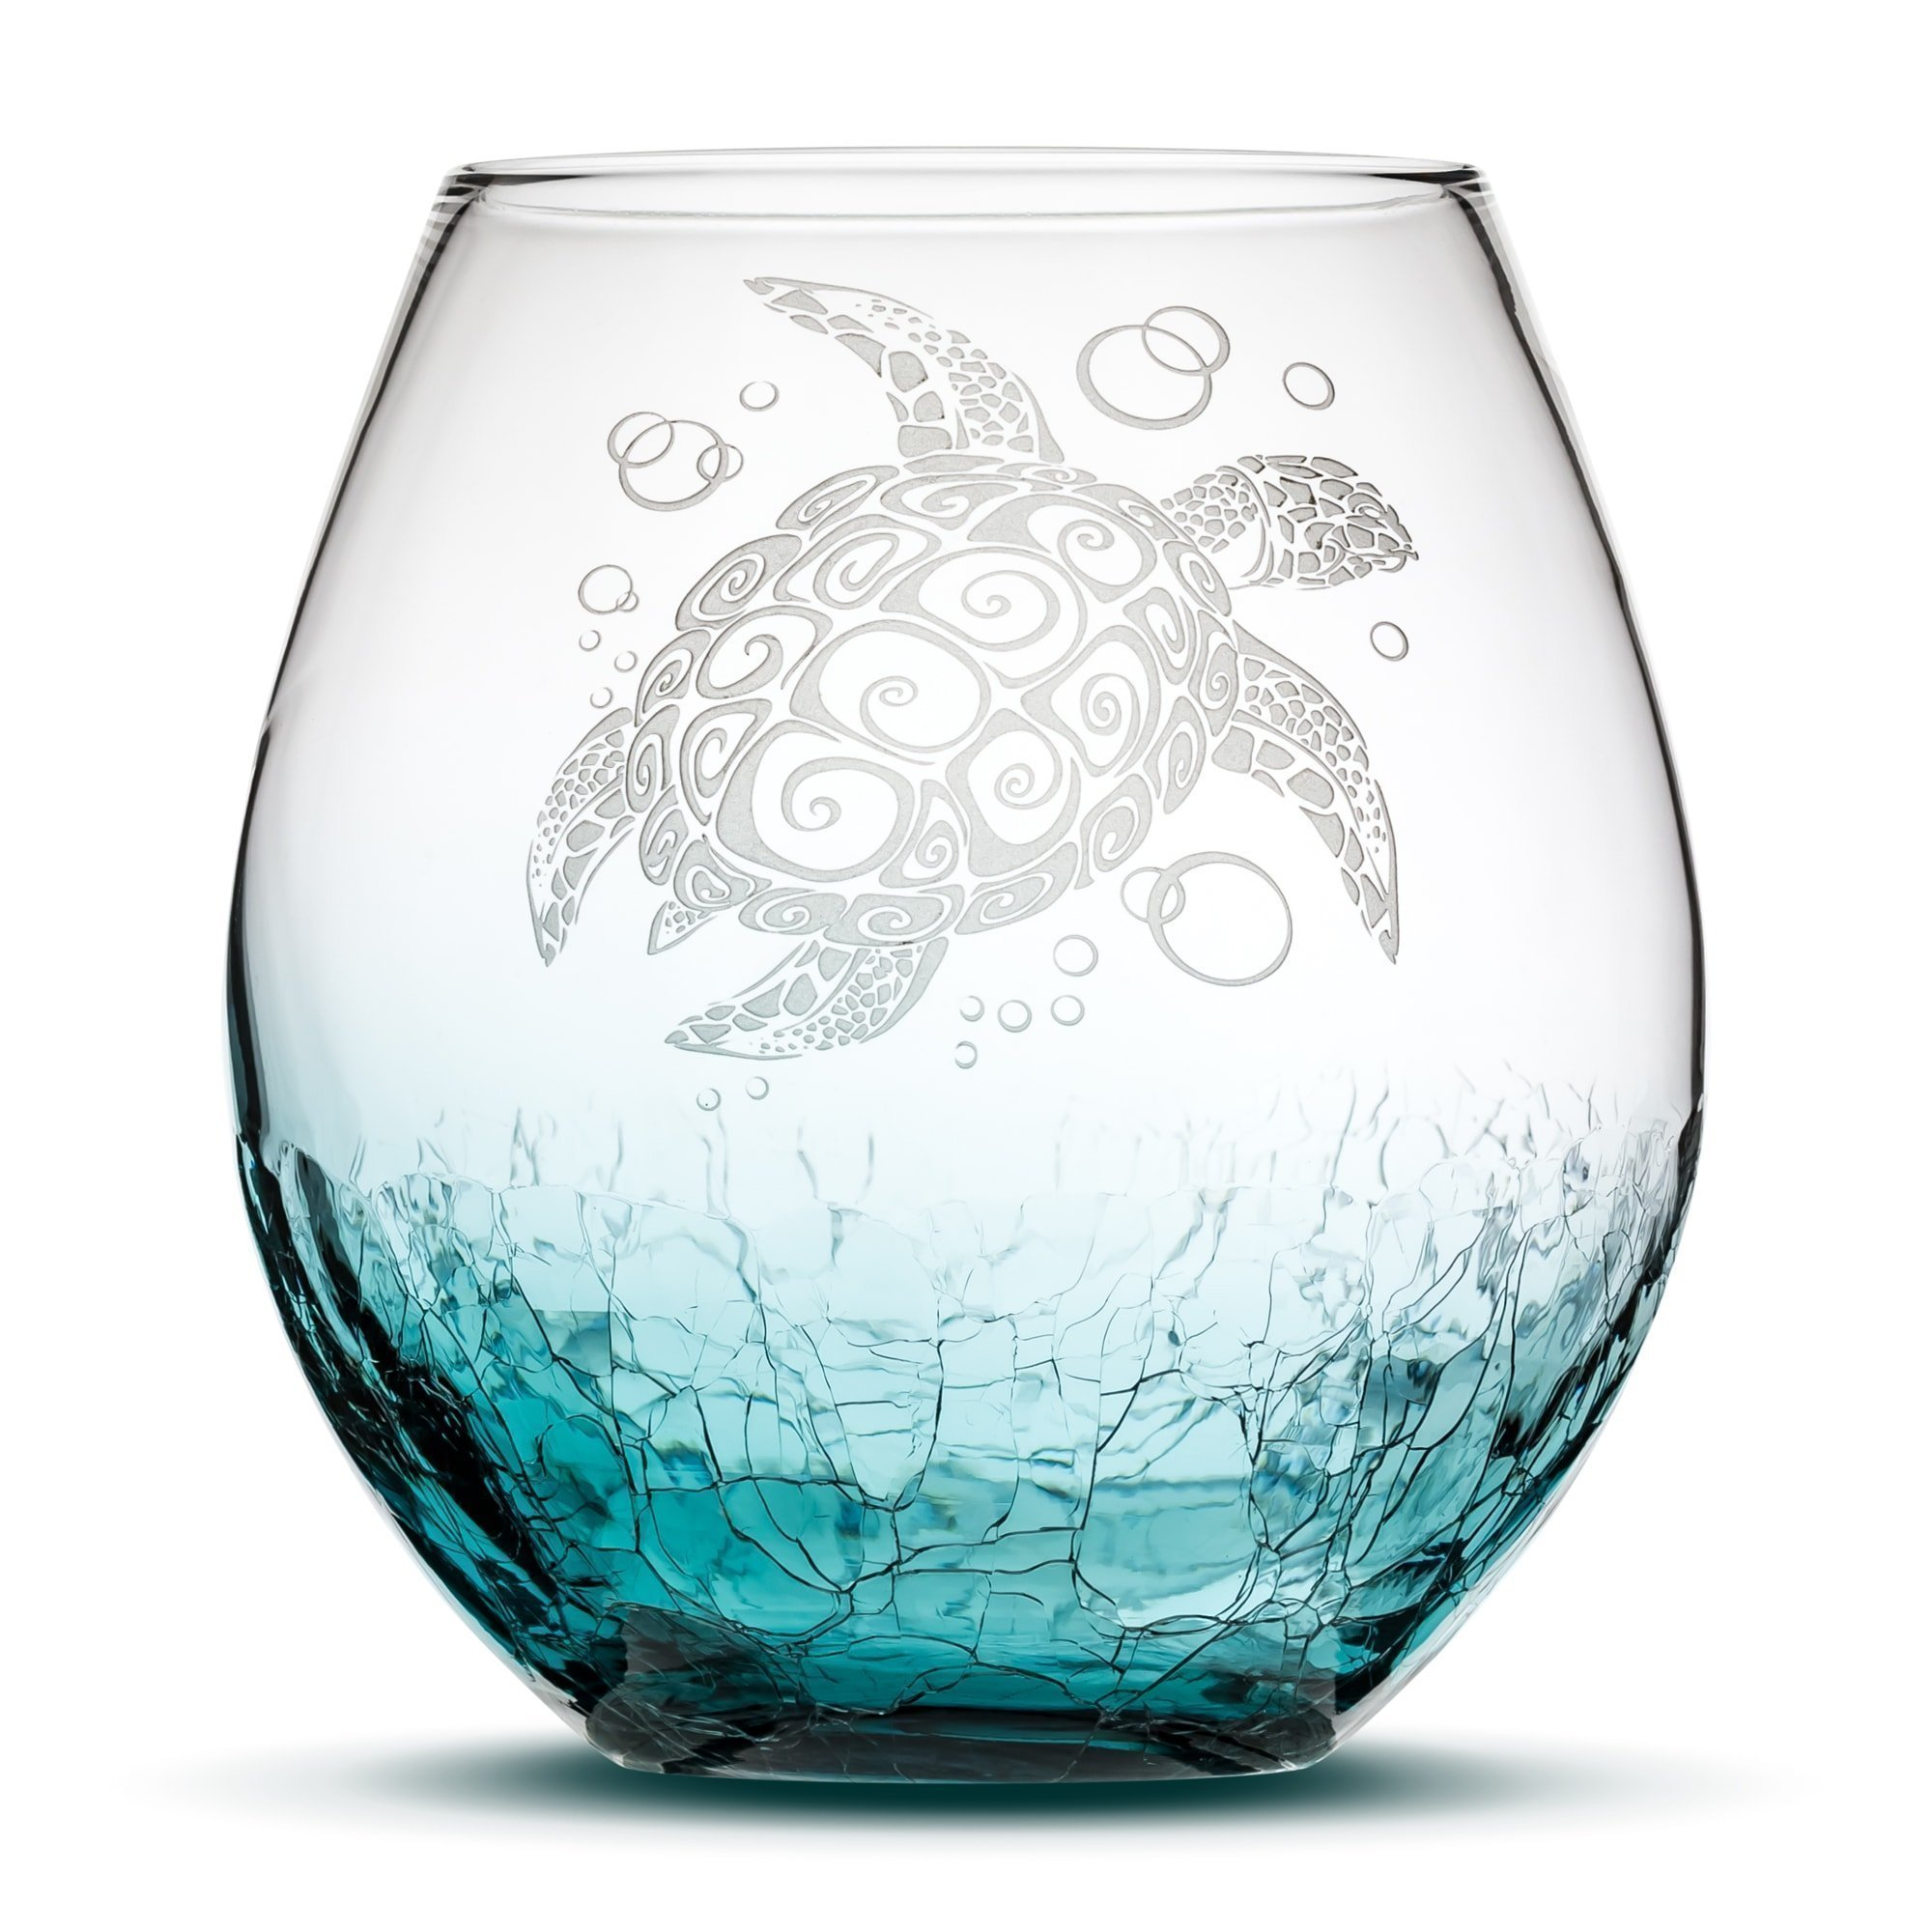 Integrity Bottles Sea Turtle Stemless Wine Glass, Crackle Teal, Handblown, Tribal Design, Hand Etched Gifts, Sand Carved by Integrity Bottles (Image #1)